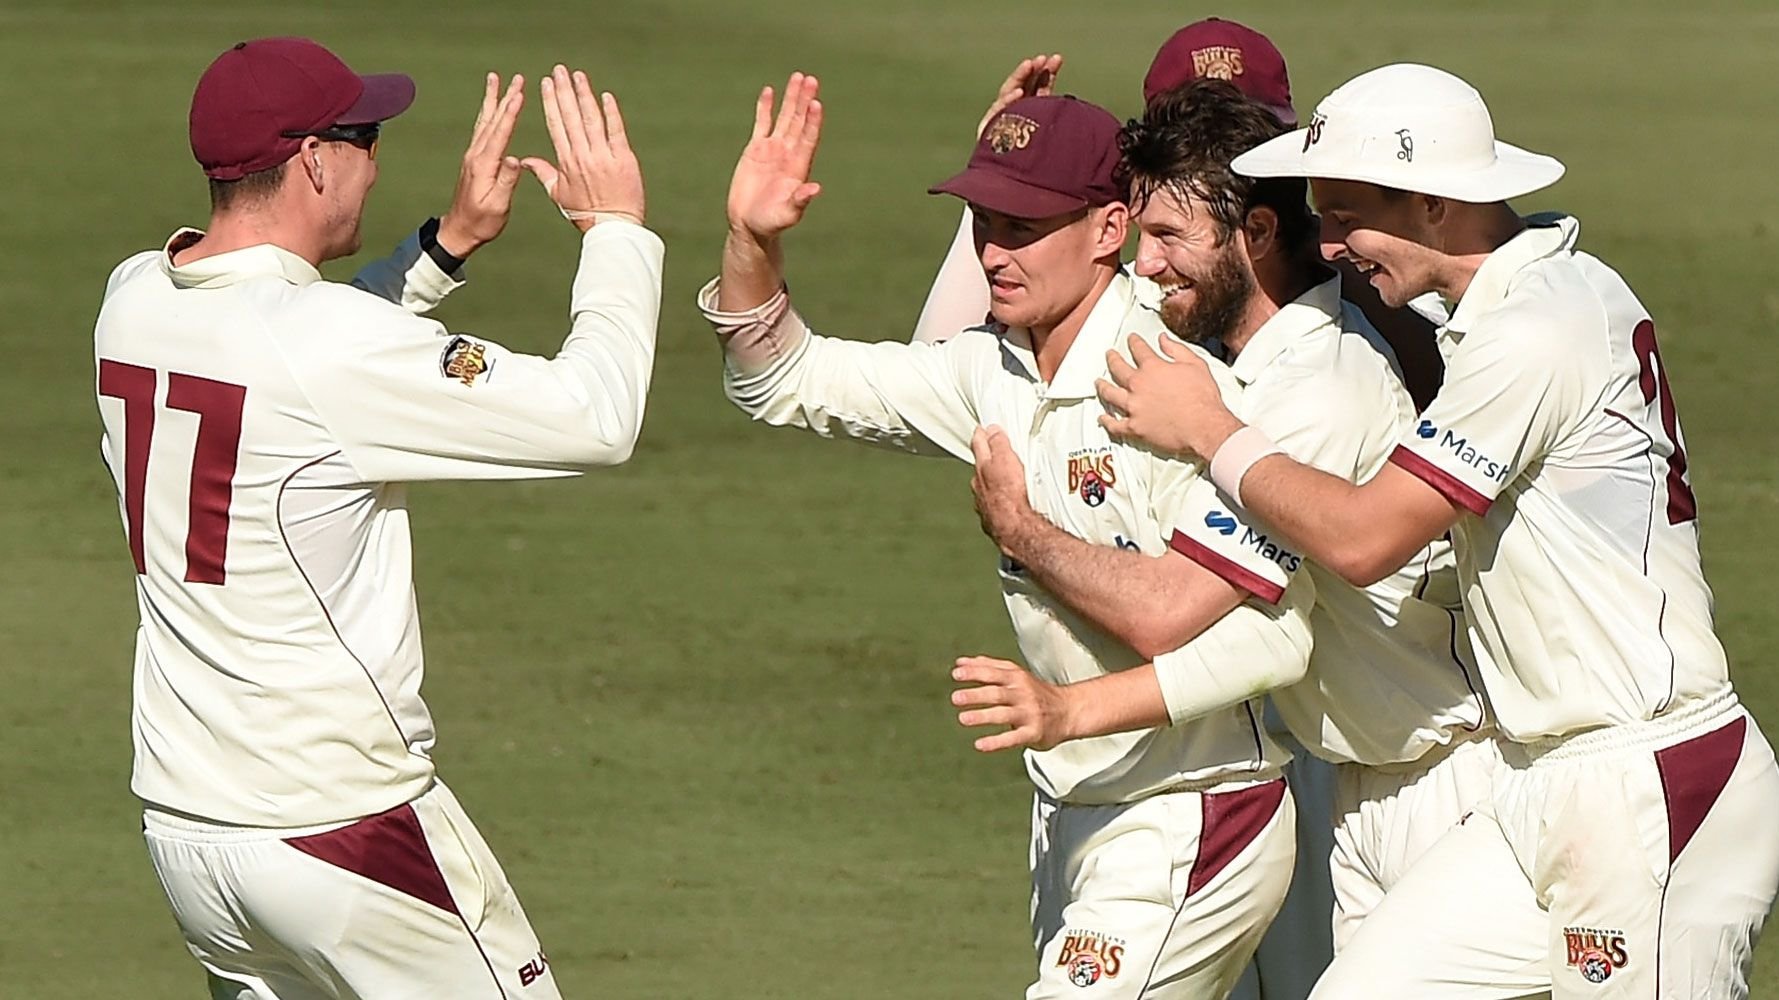 Queensland players celebrate a screamer of a catch from Marnus Labuschagne.